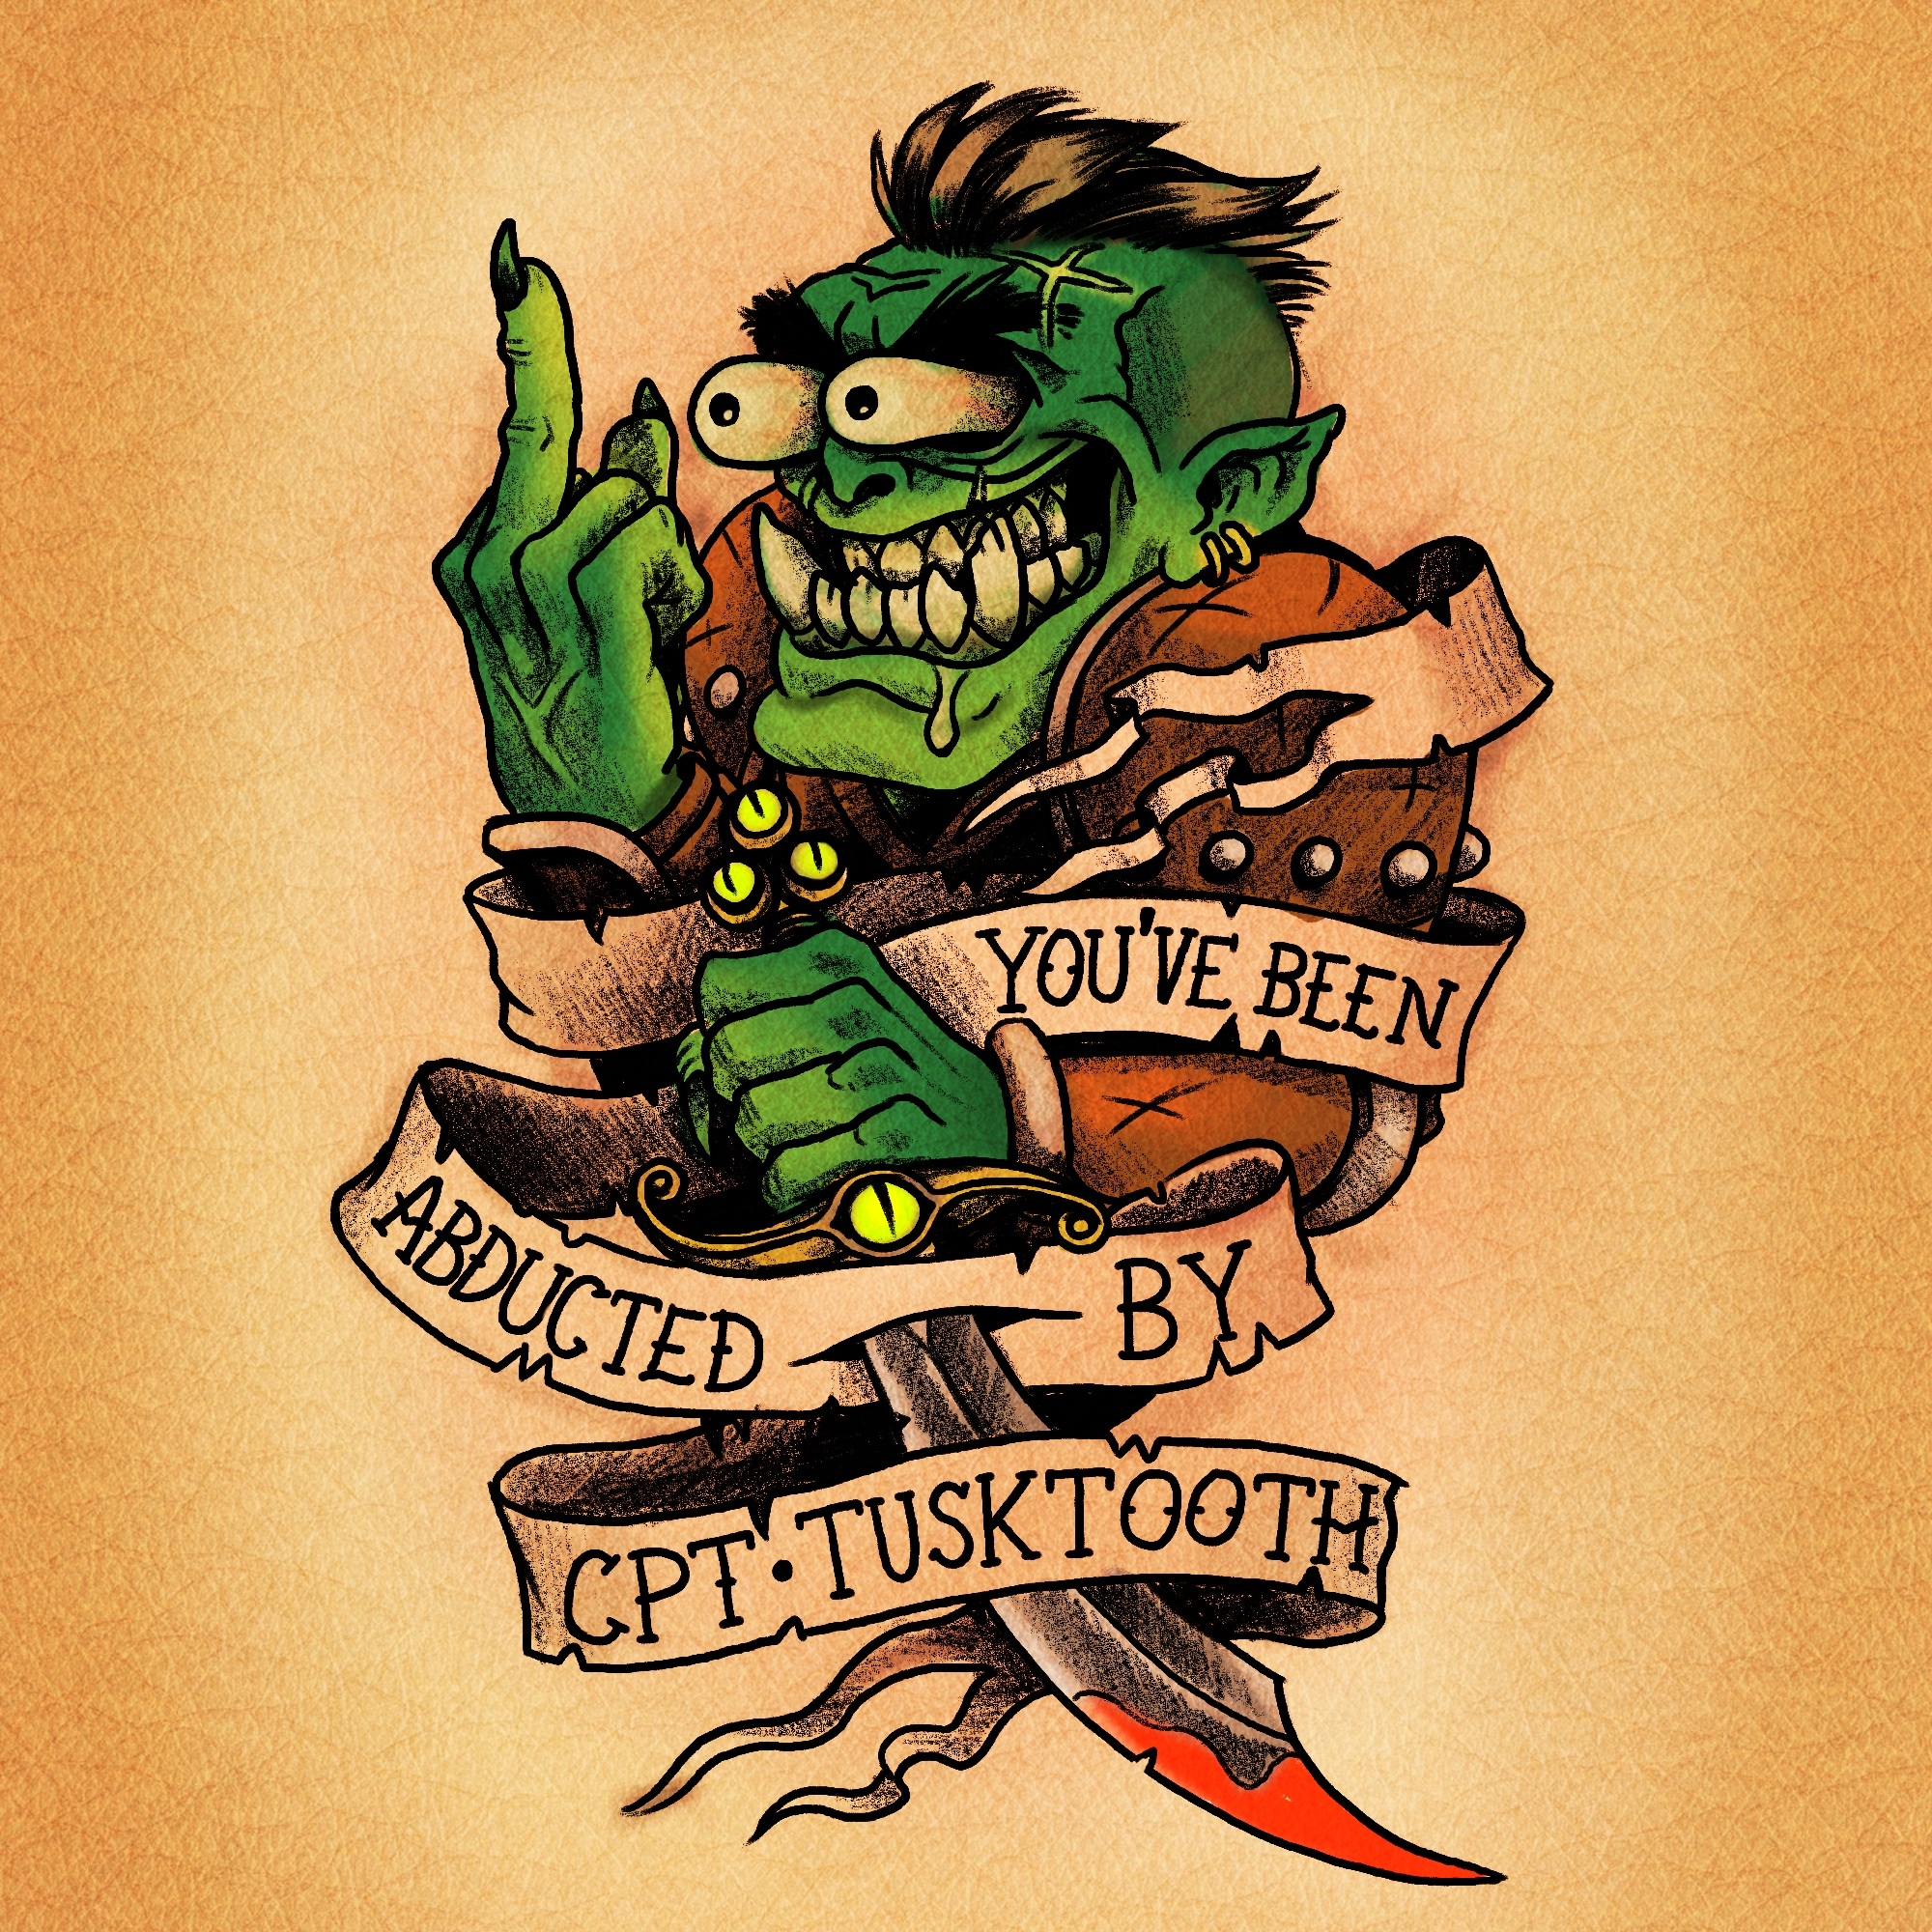 captain TuskTooth tattoo